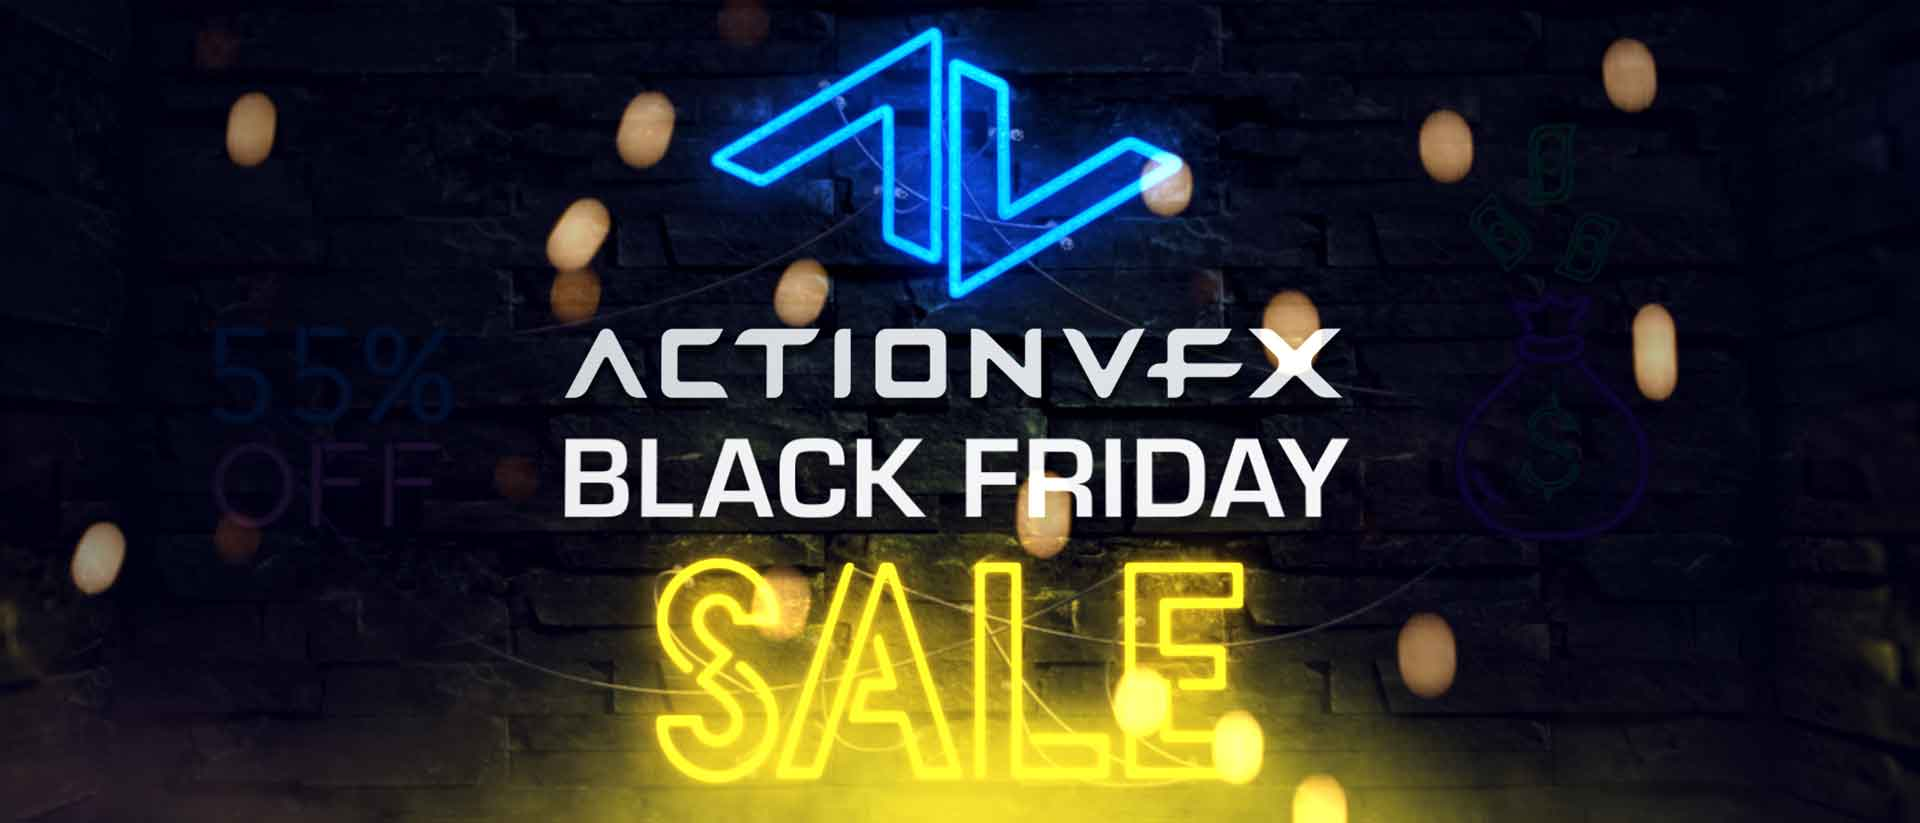 Black friday 2019 everything you need to know